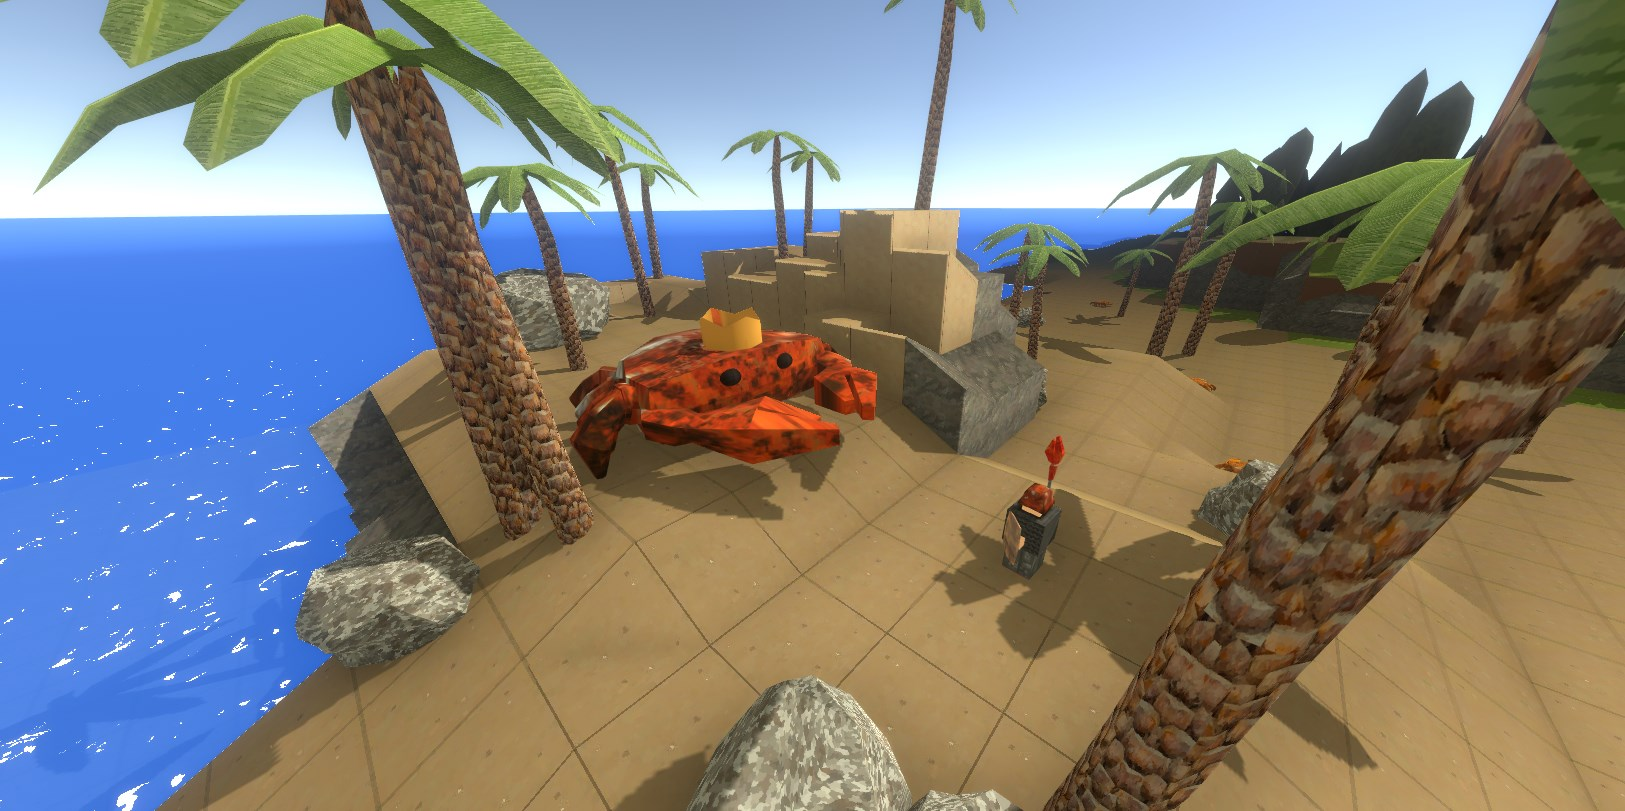 A player standing in front of a giant crab